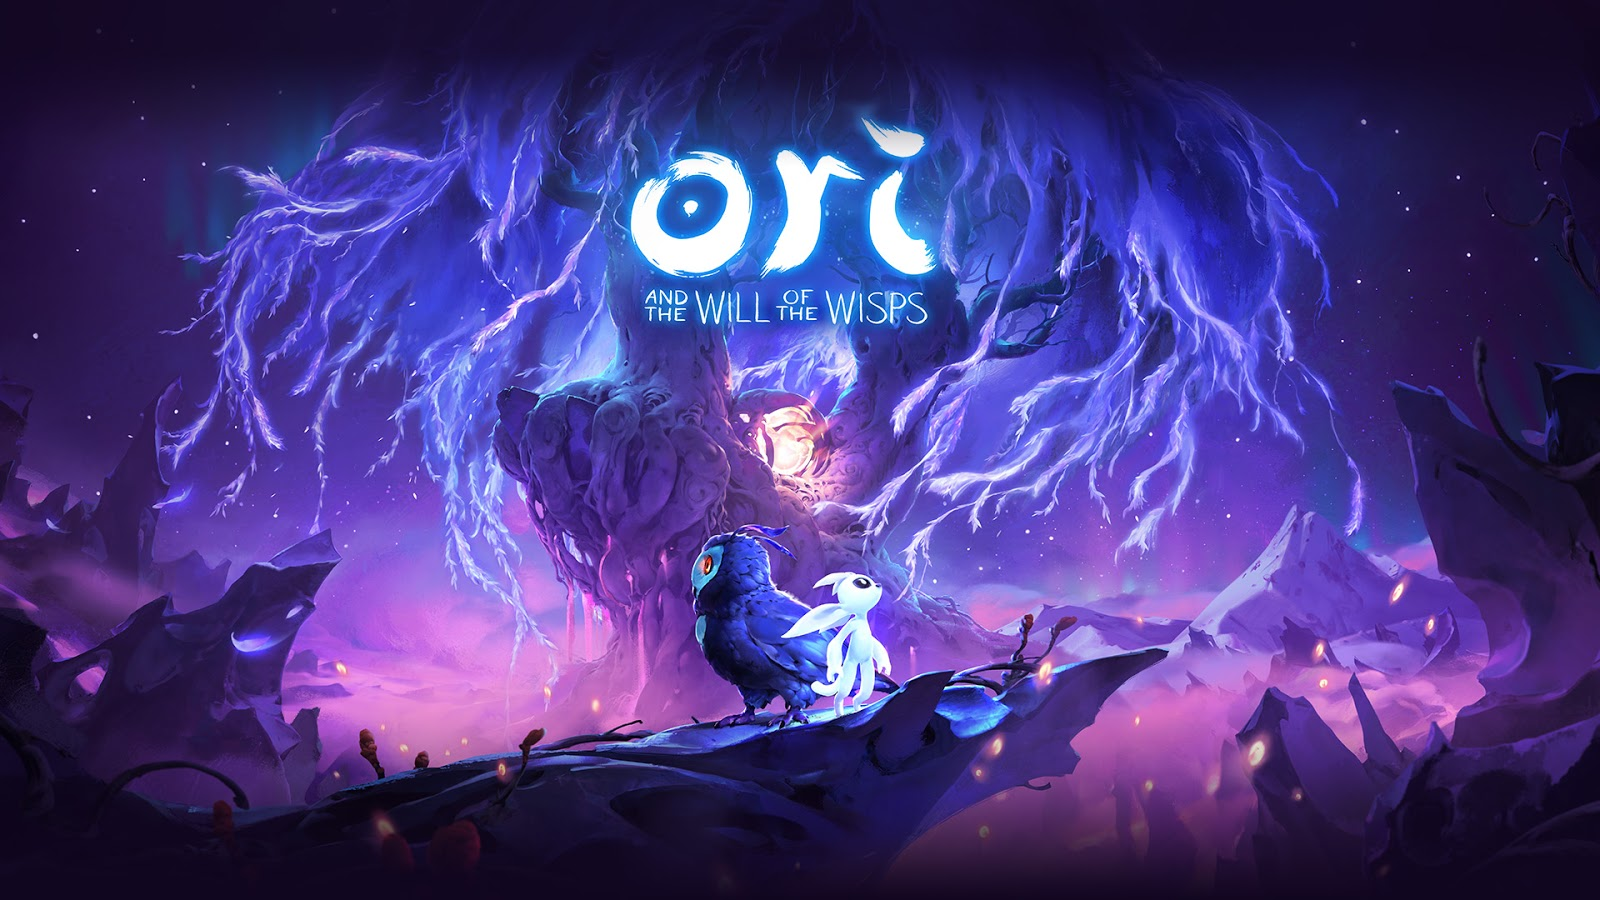 Ori and the Will of the Wisps for Xbox One and Windows 10